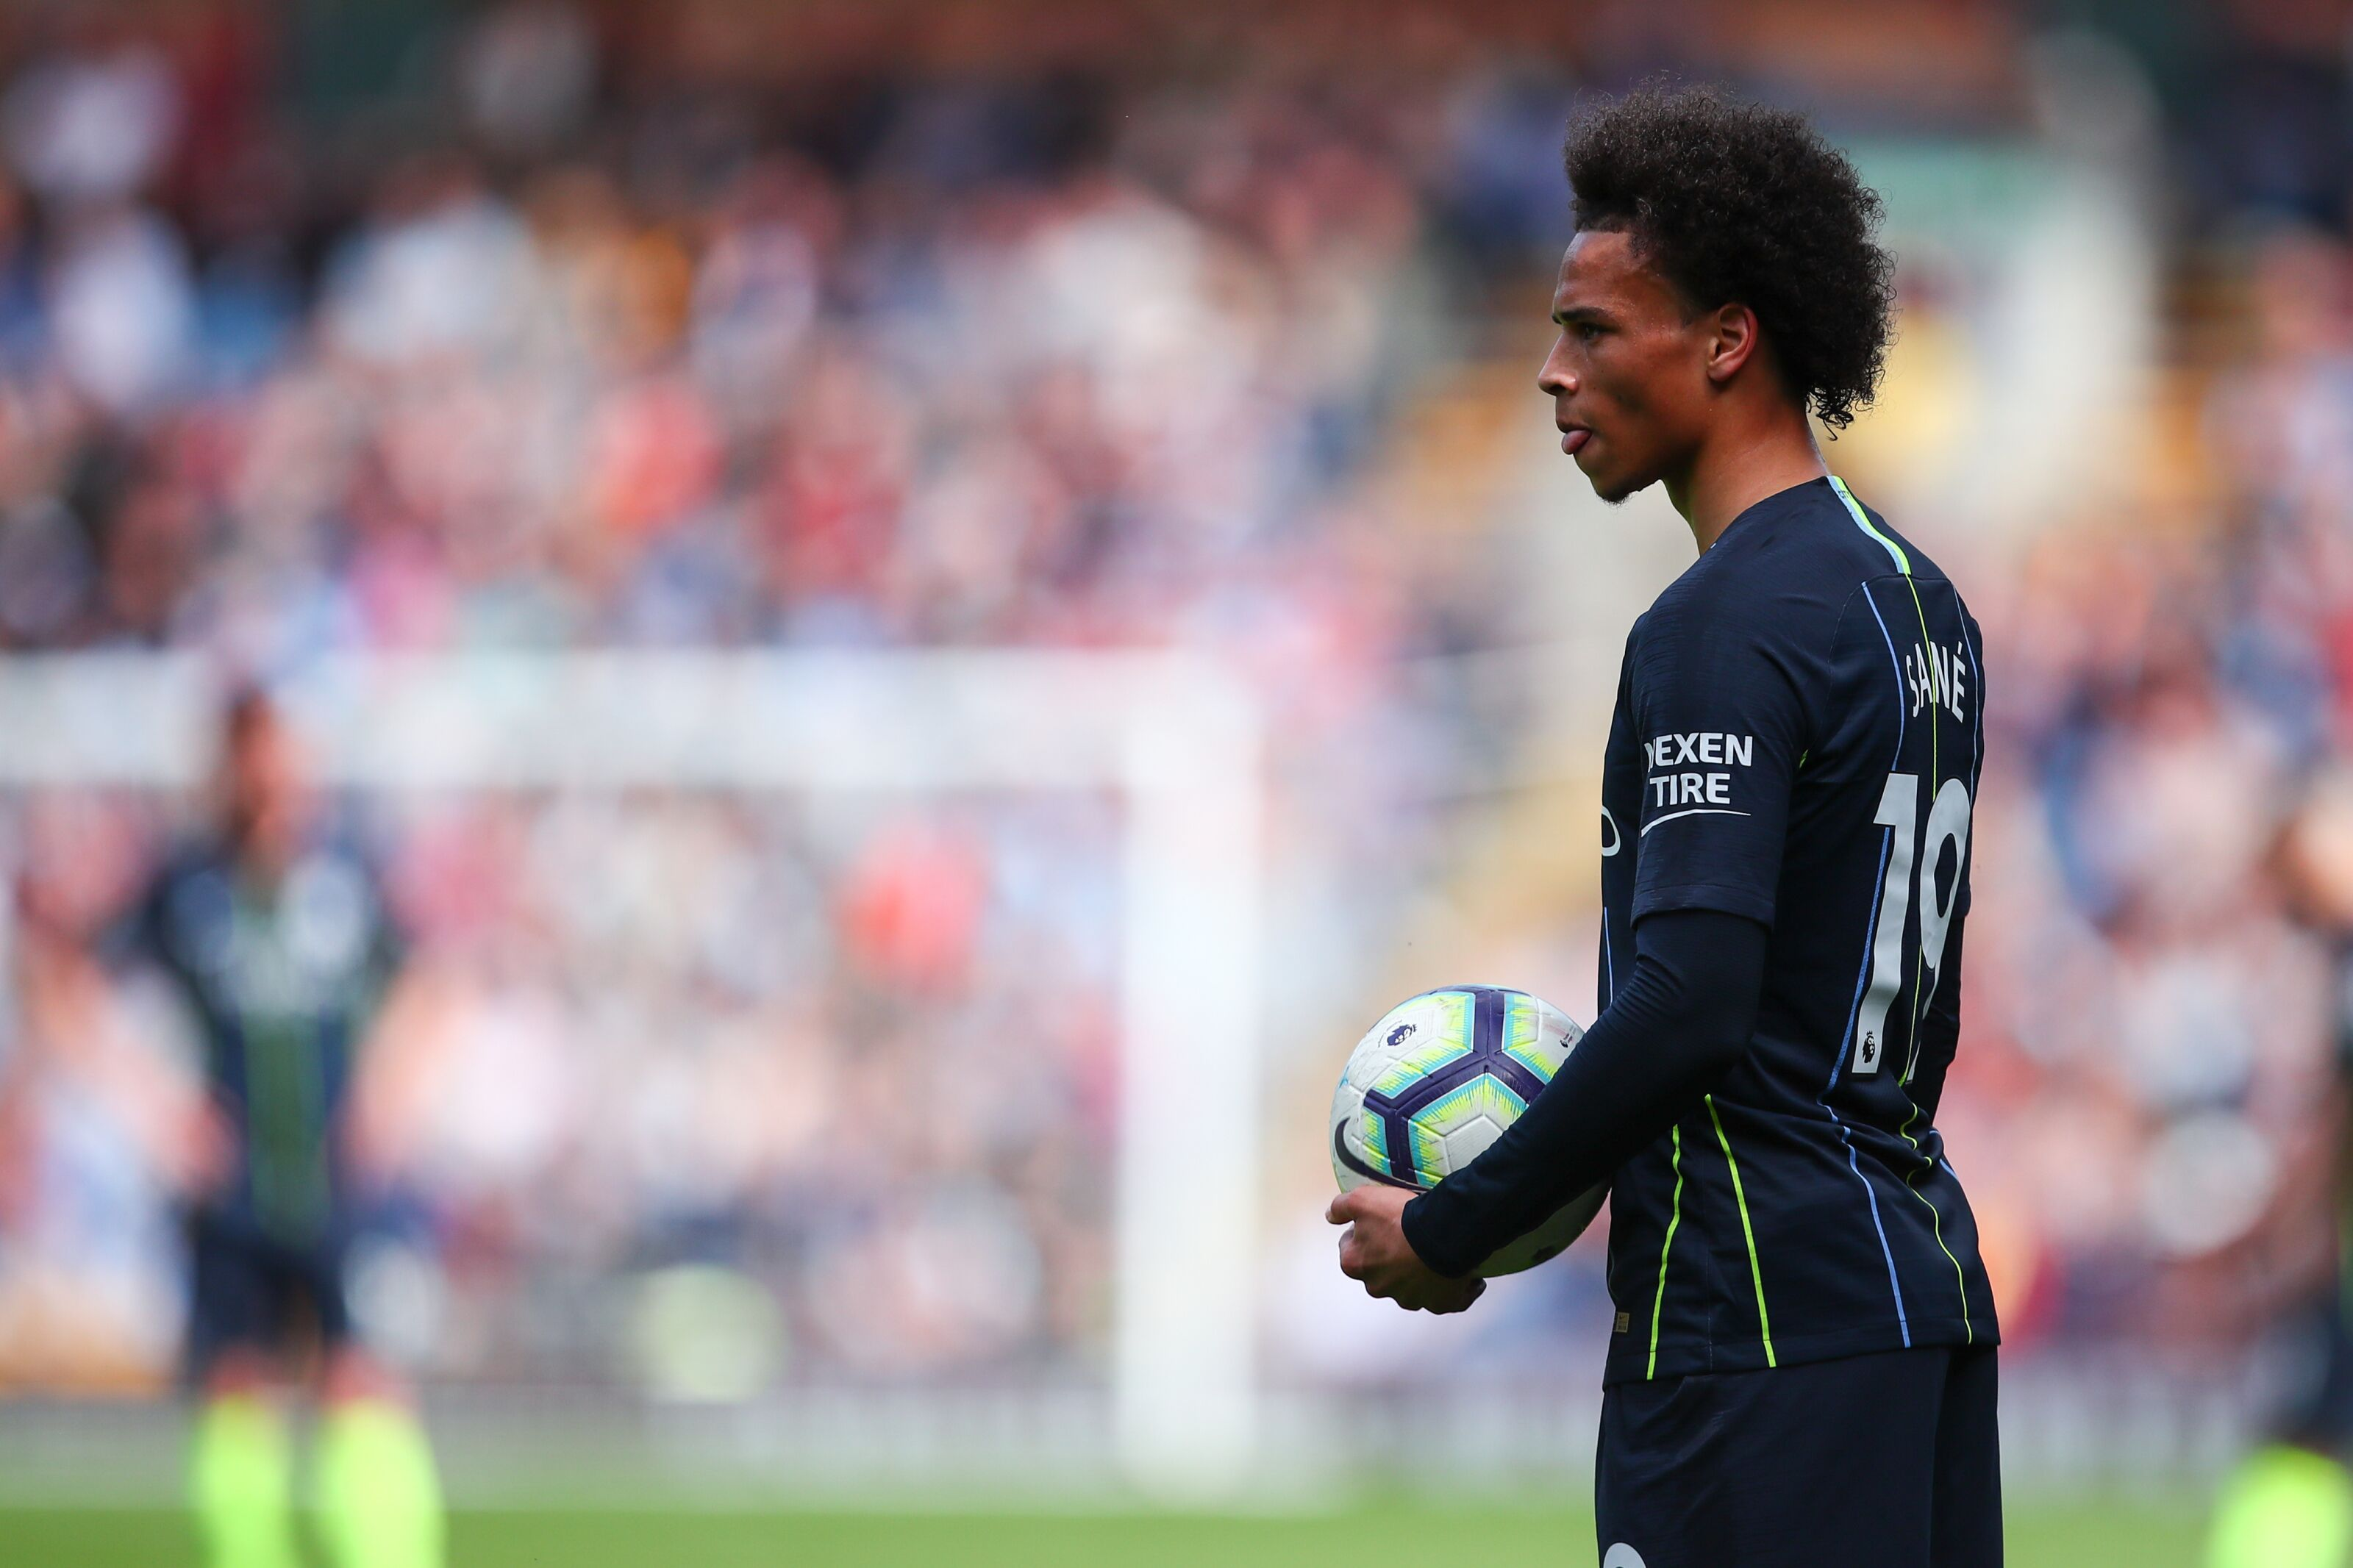 Bayern Munich missing out on Leroy Sane would be tough blow